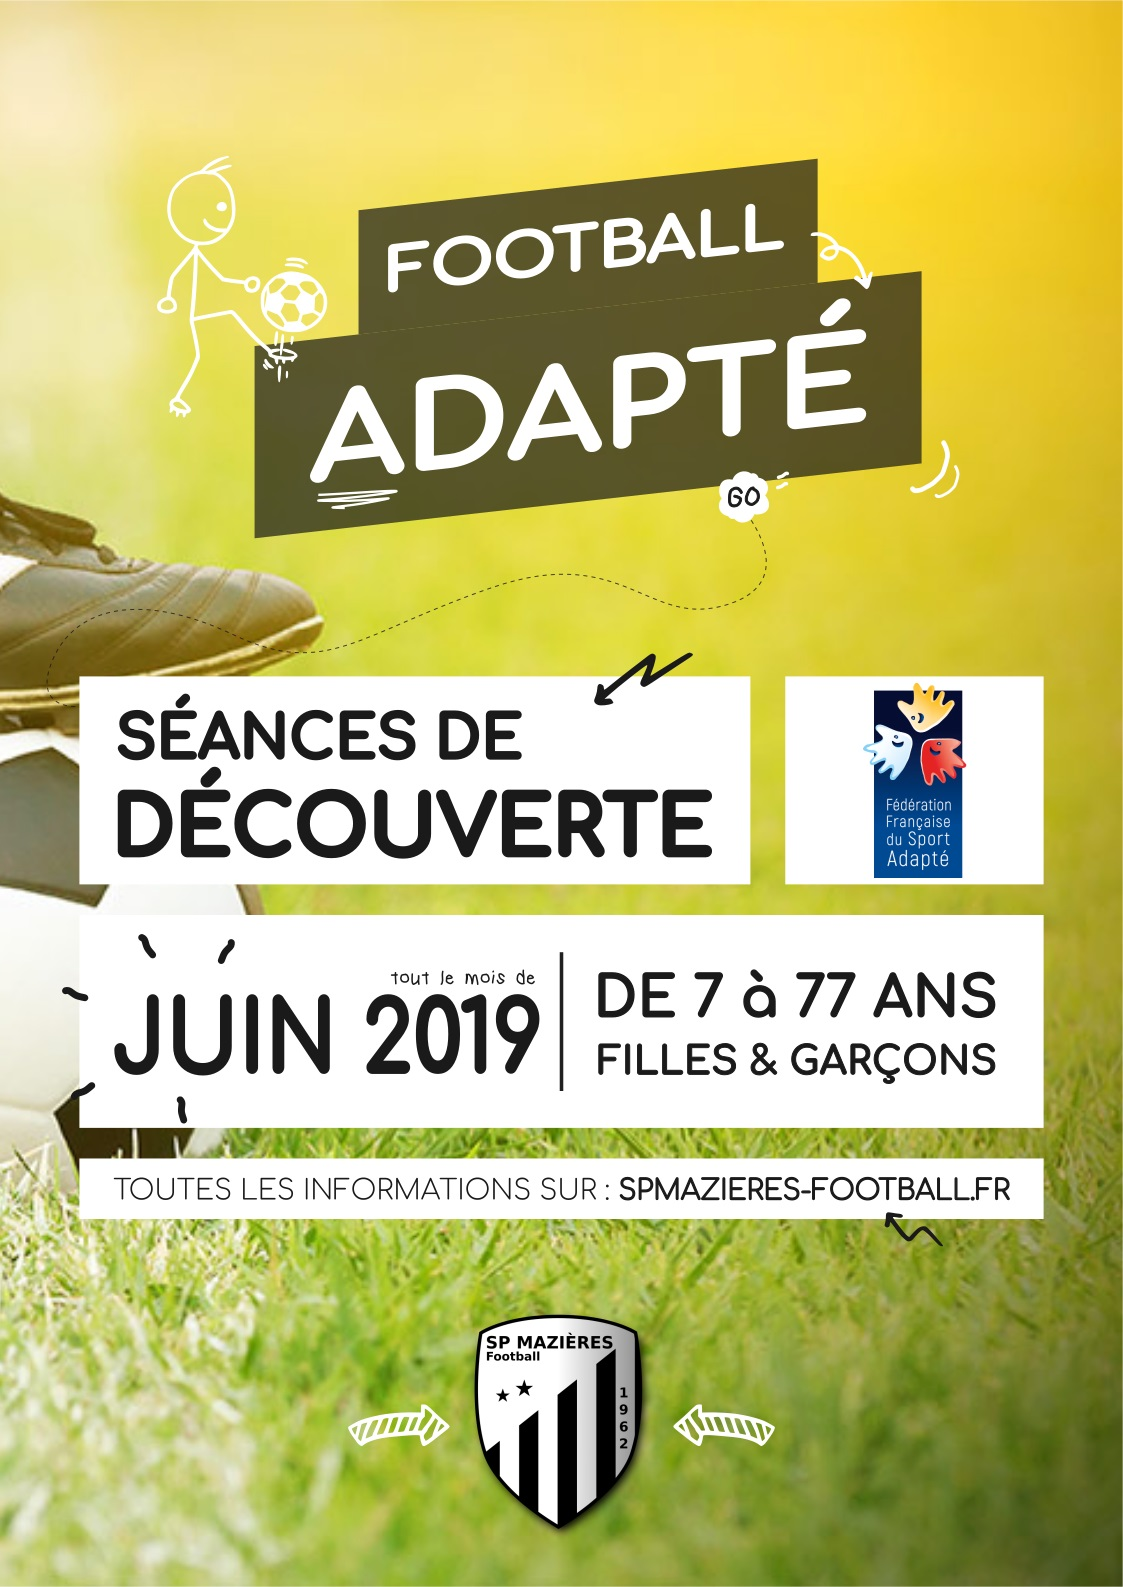 2019 seances decouv adapte